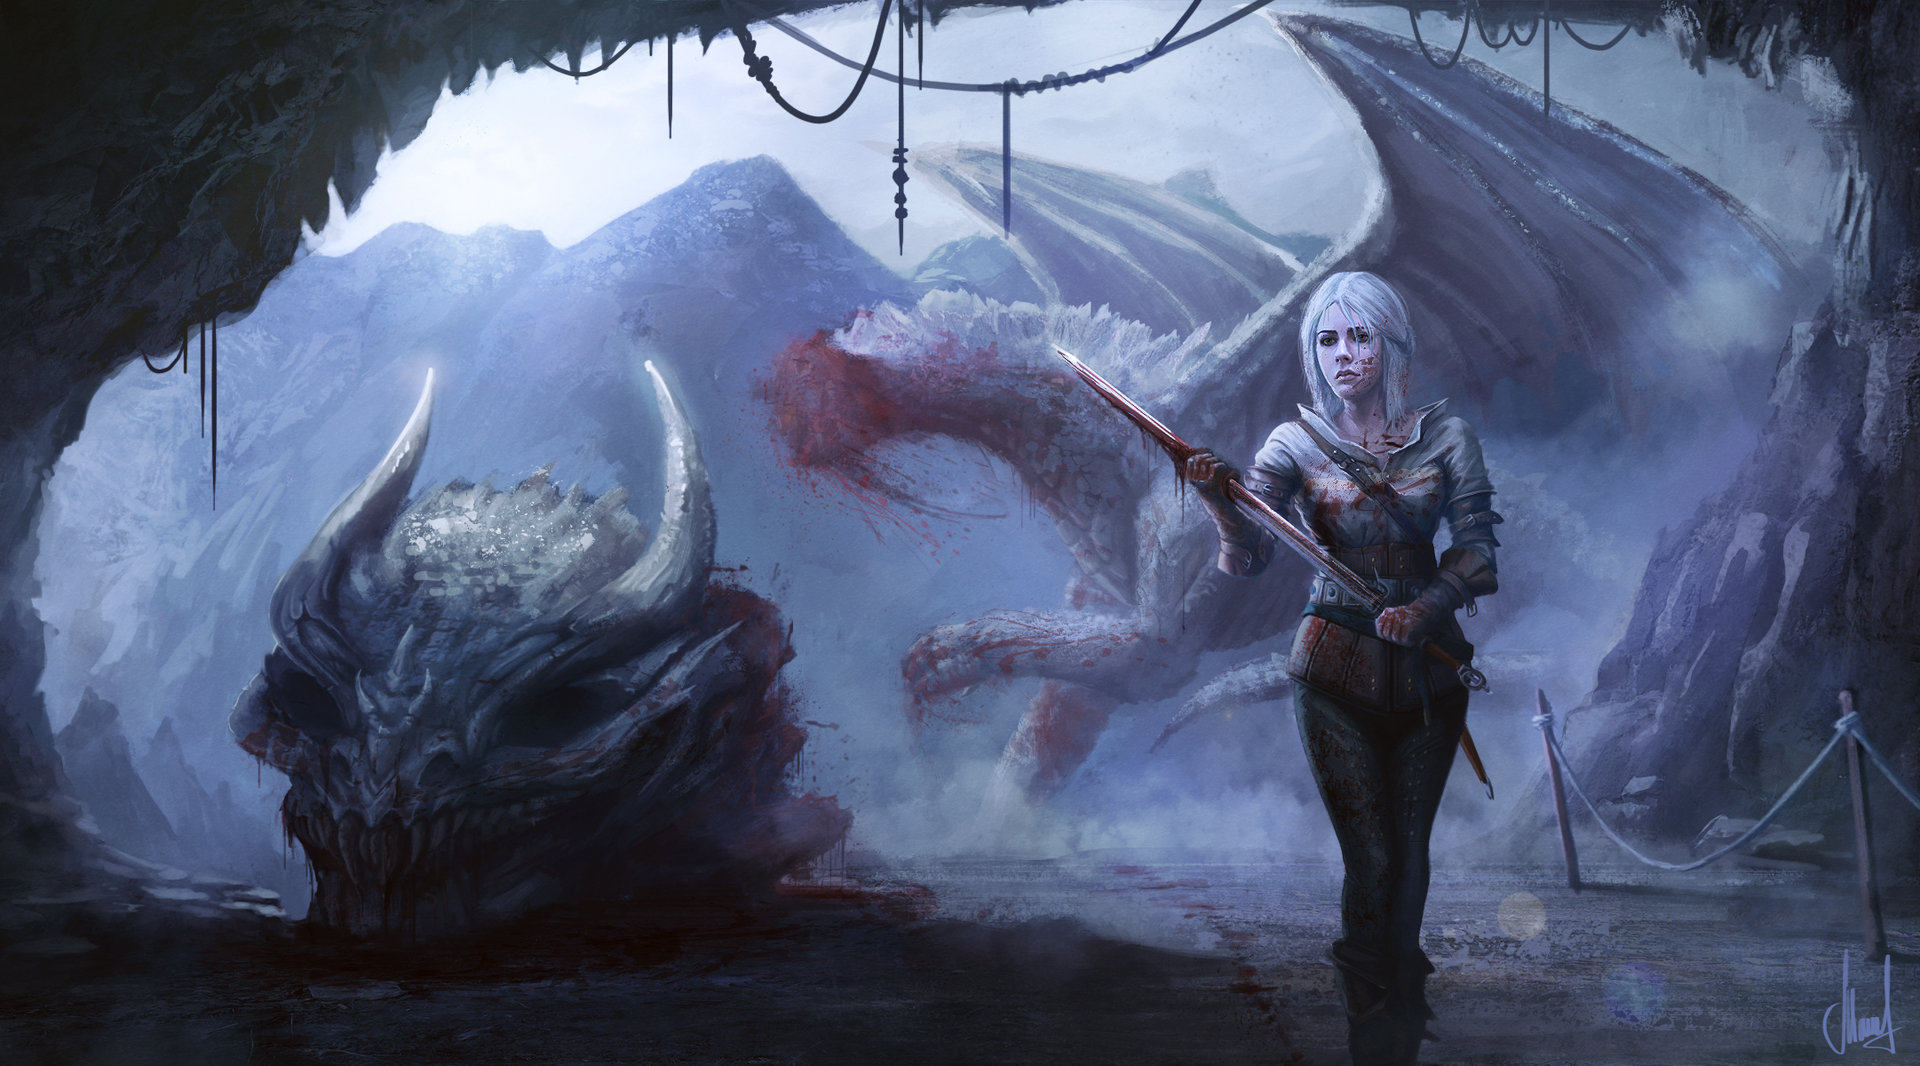 The Witcher Wild Hunt Ciri by Mujia Liao [xpost r